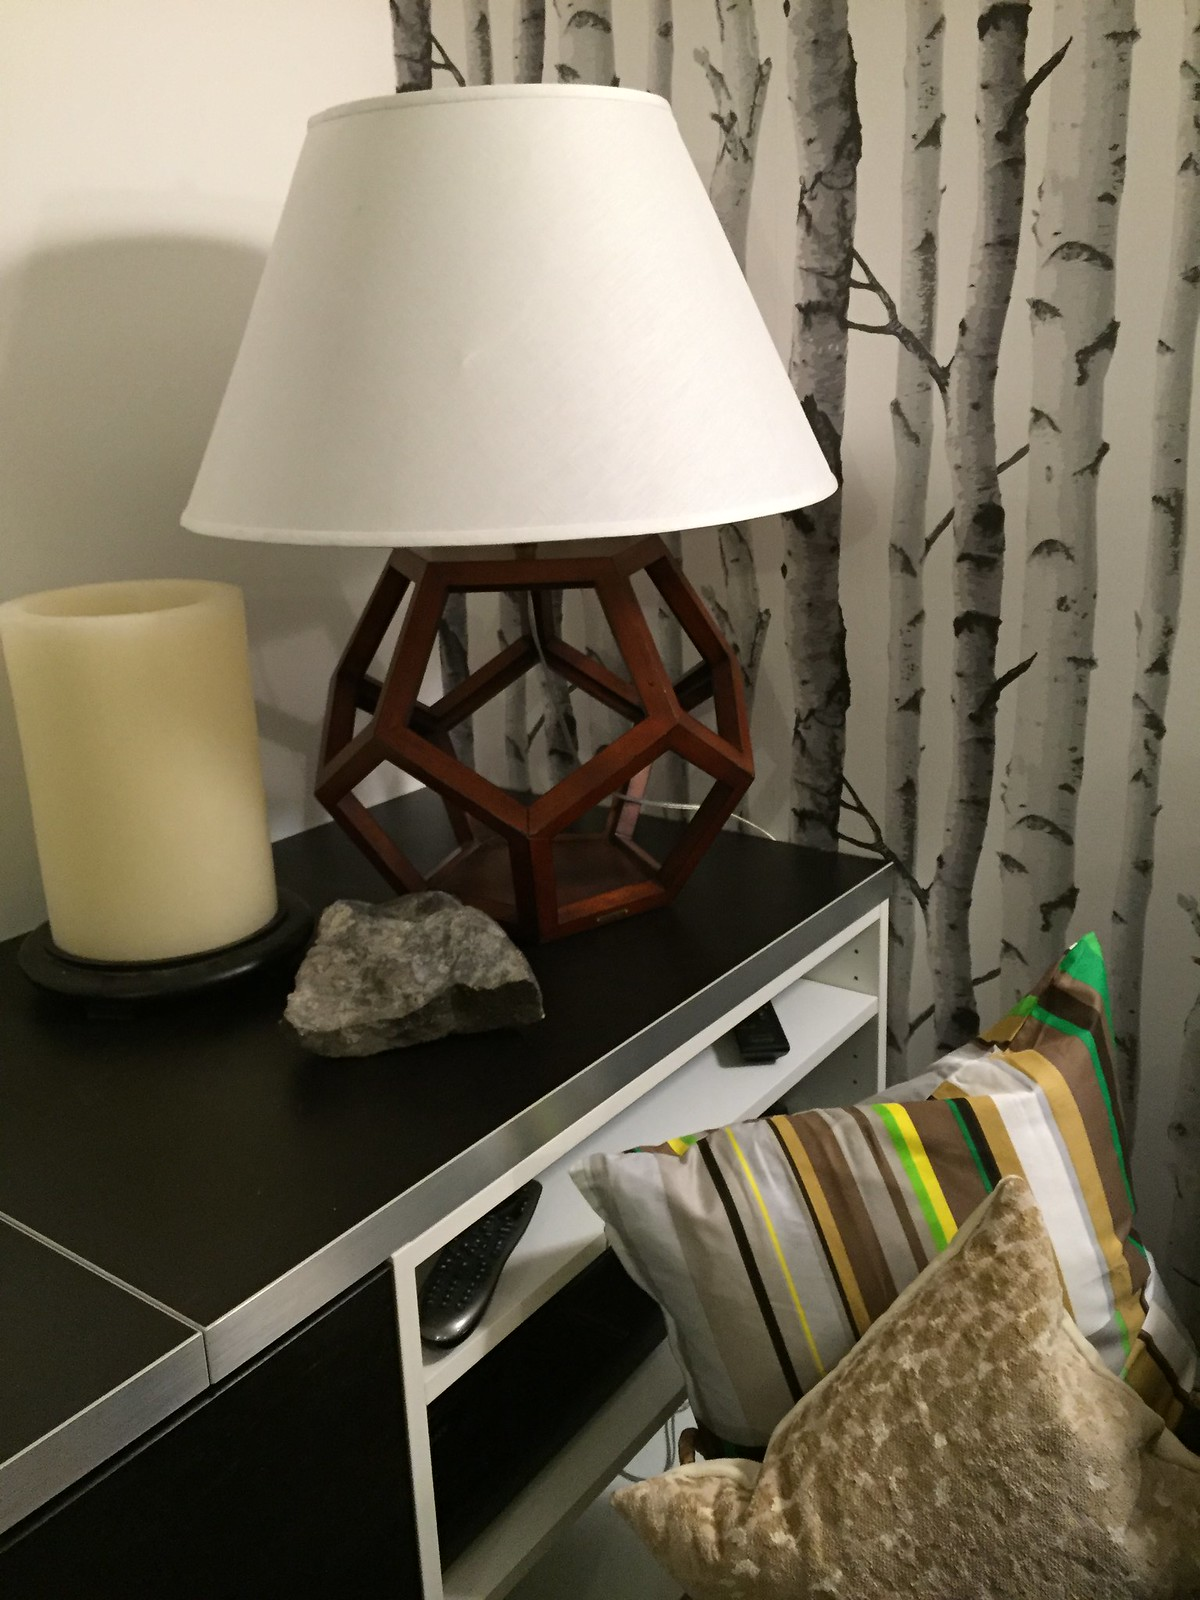 graphic lamp with candle on shelf